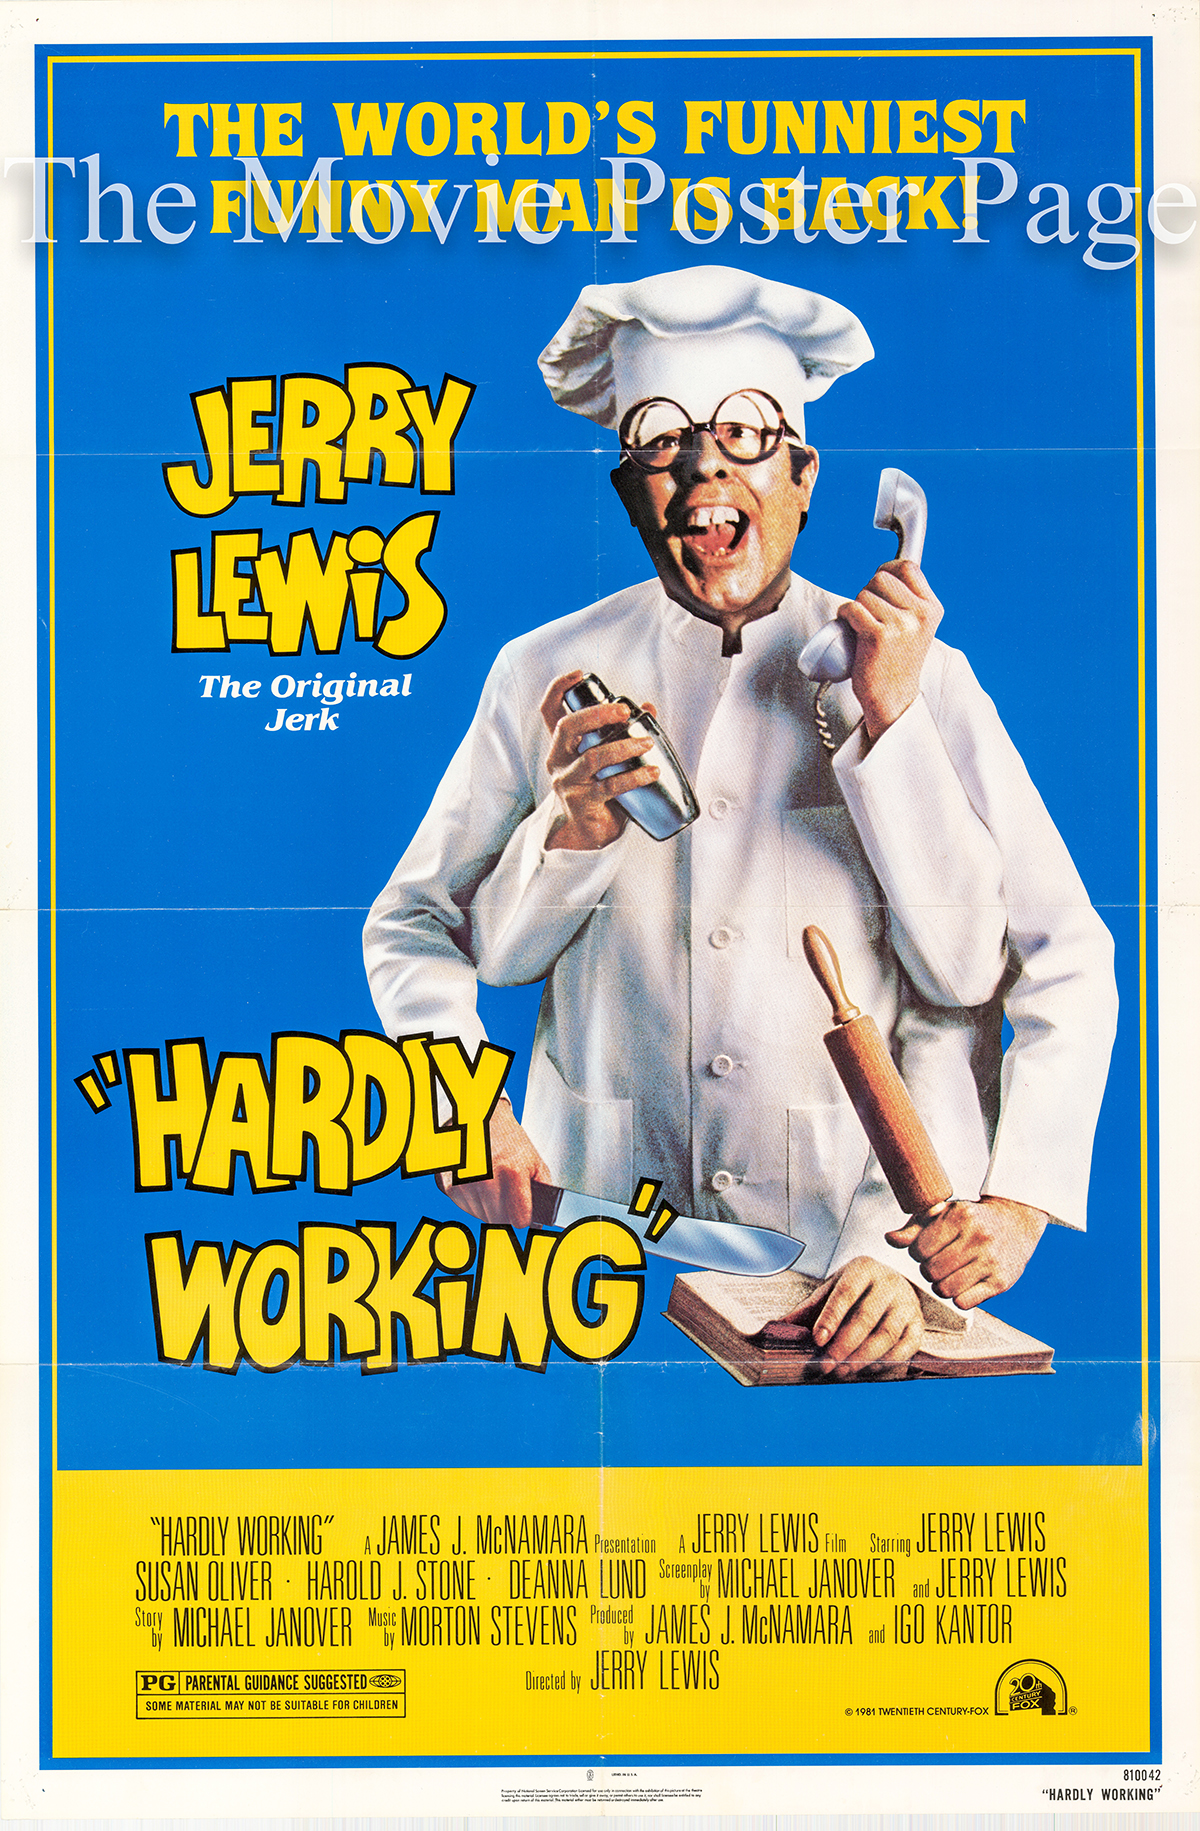 Pictured is a US promotional poster for the 1980 Jerry Lewis film Hardly Working starring Jerry Lewis.